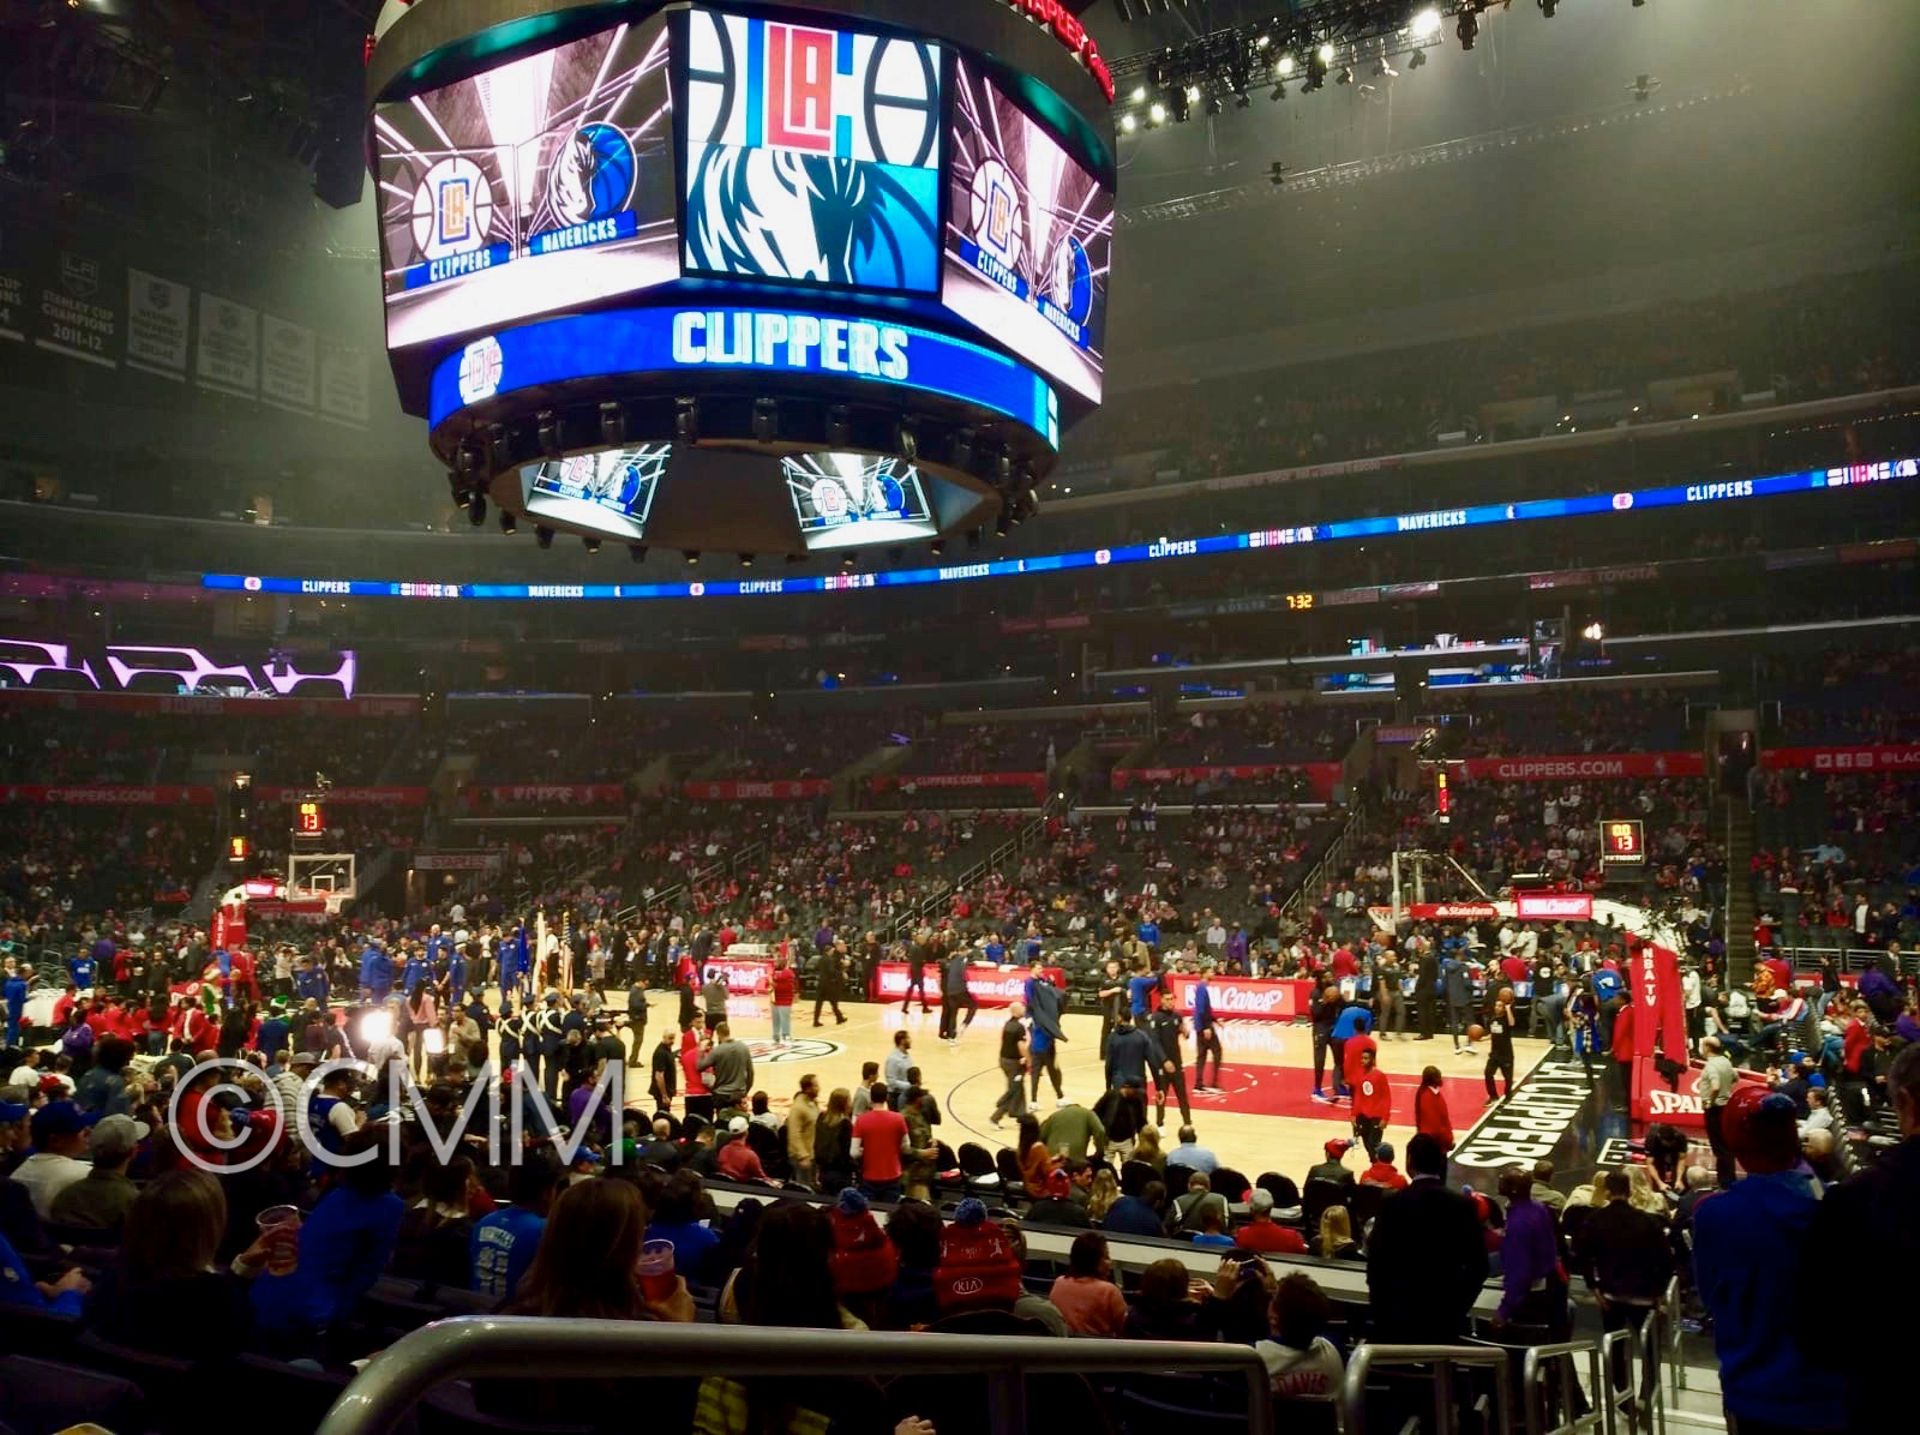 Let's go Clippers!